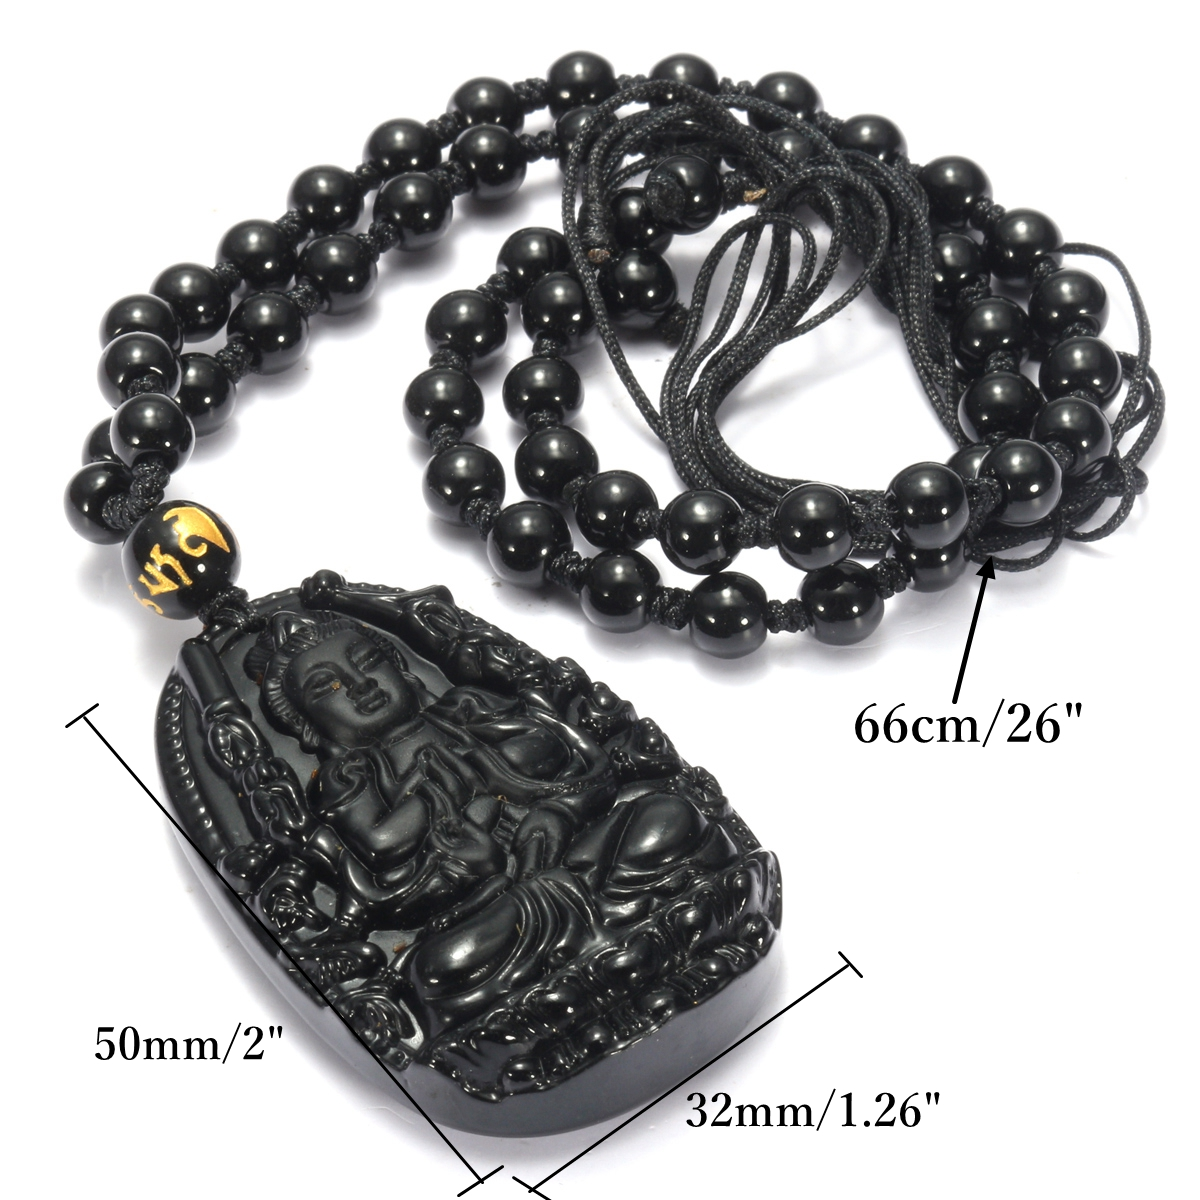 Black Obsidian Goddess Mercy Amulet Pendant Necklace Prayer